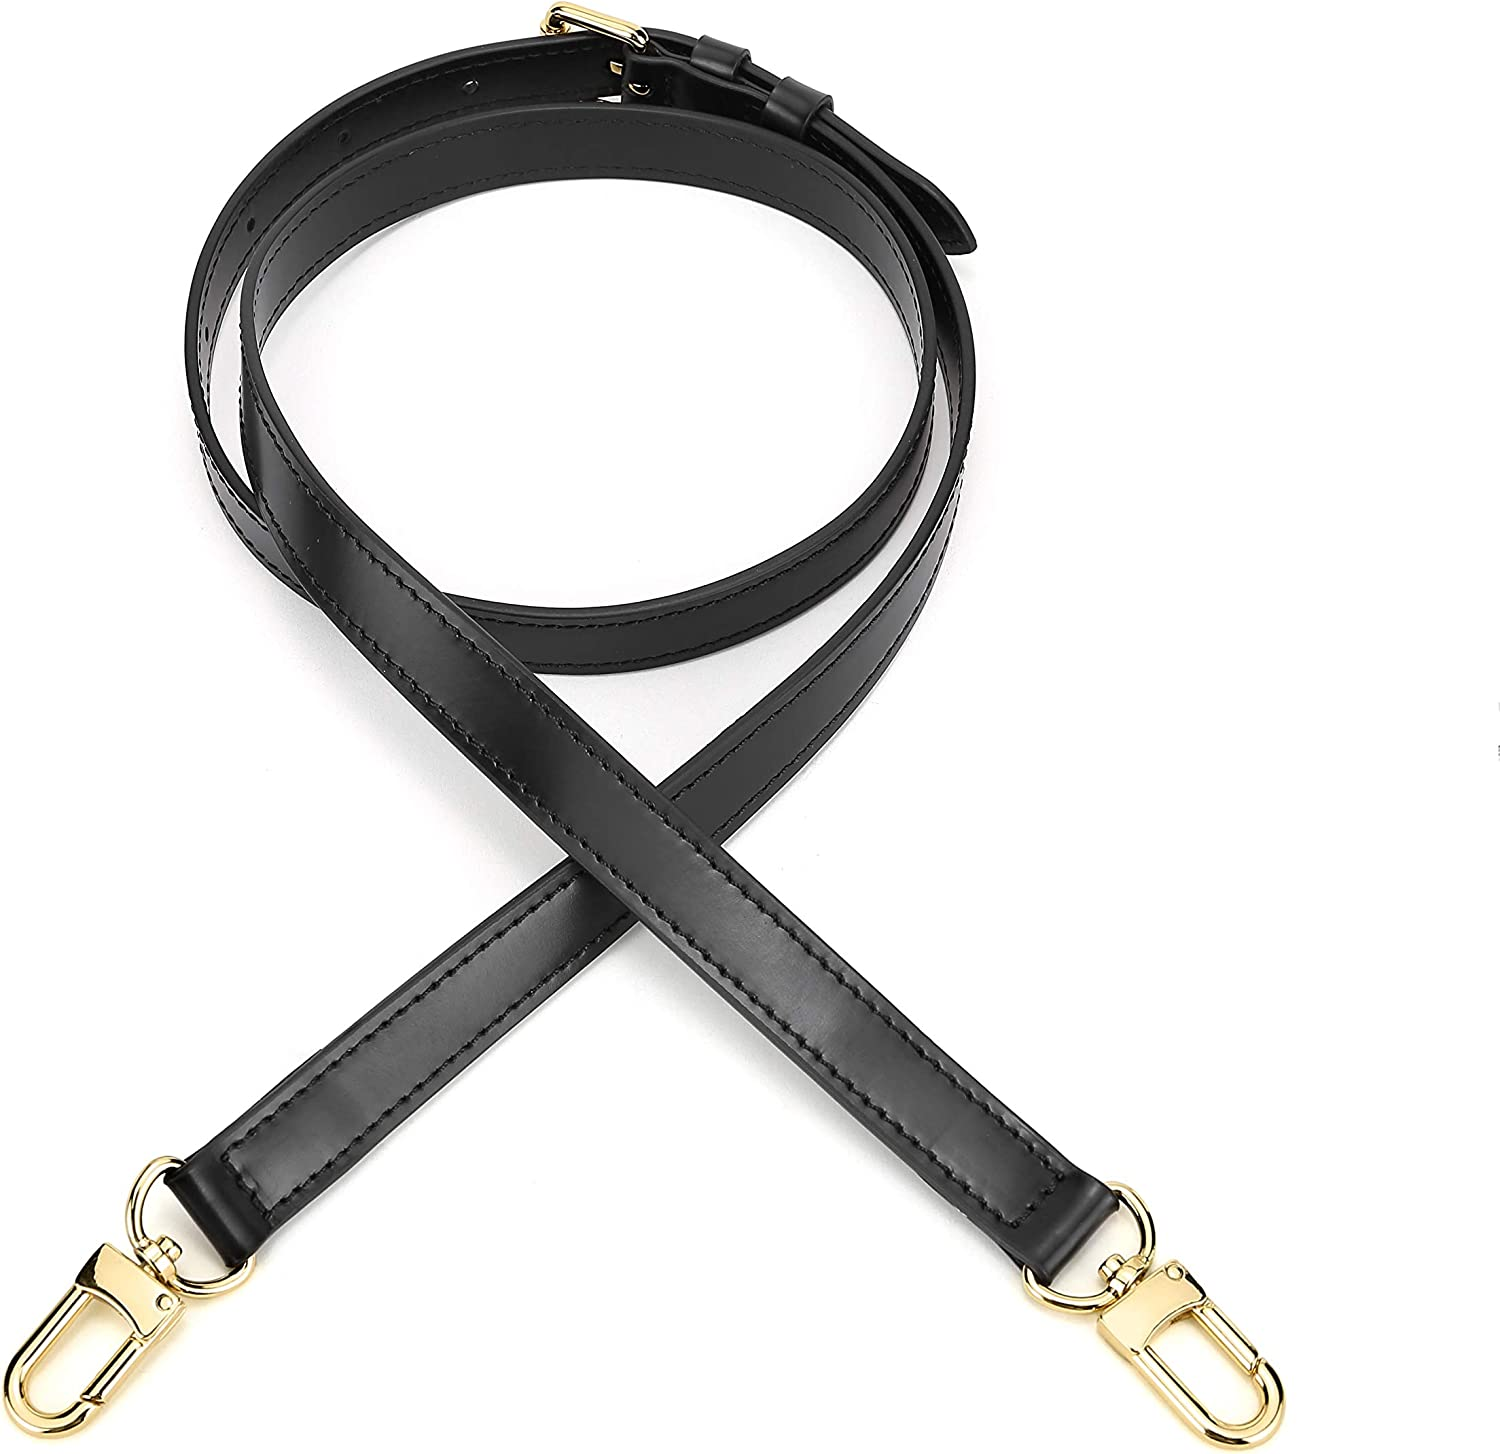 46.5 inch 118CM  Adjustable genuine leather  shoulder cross body bag purse strap with hooks replacement Dark with bronze hardware